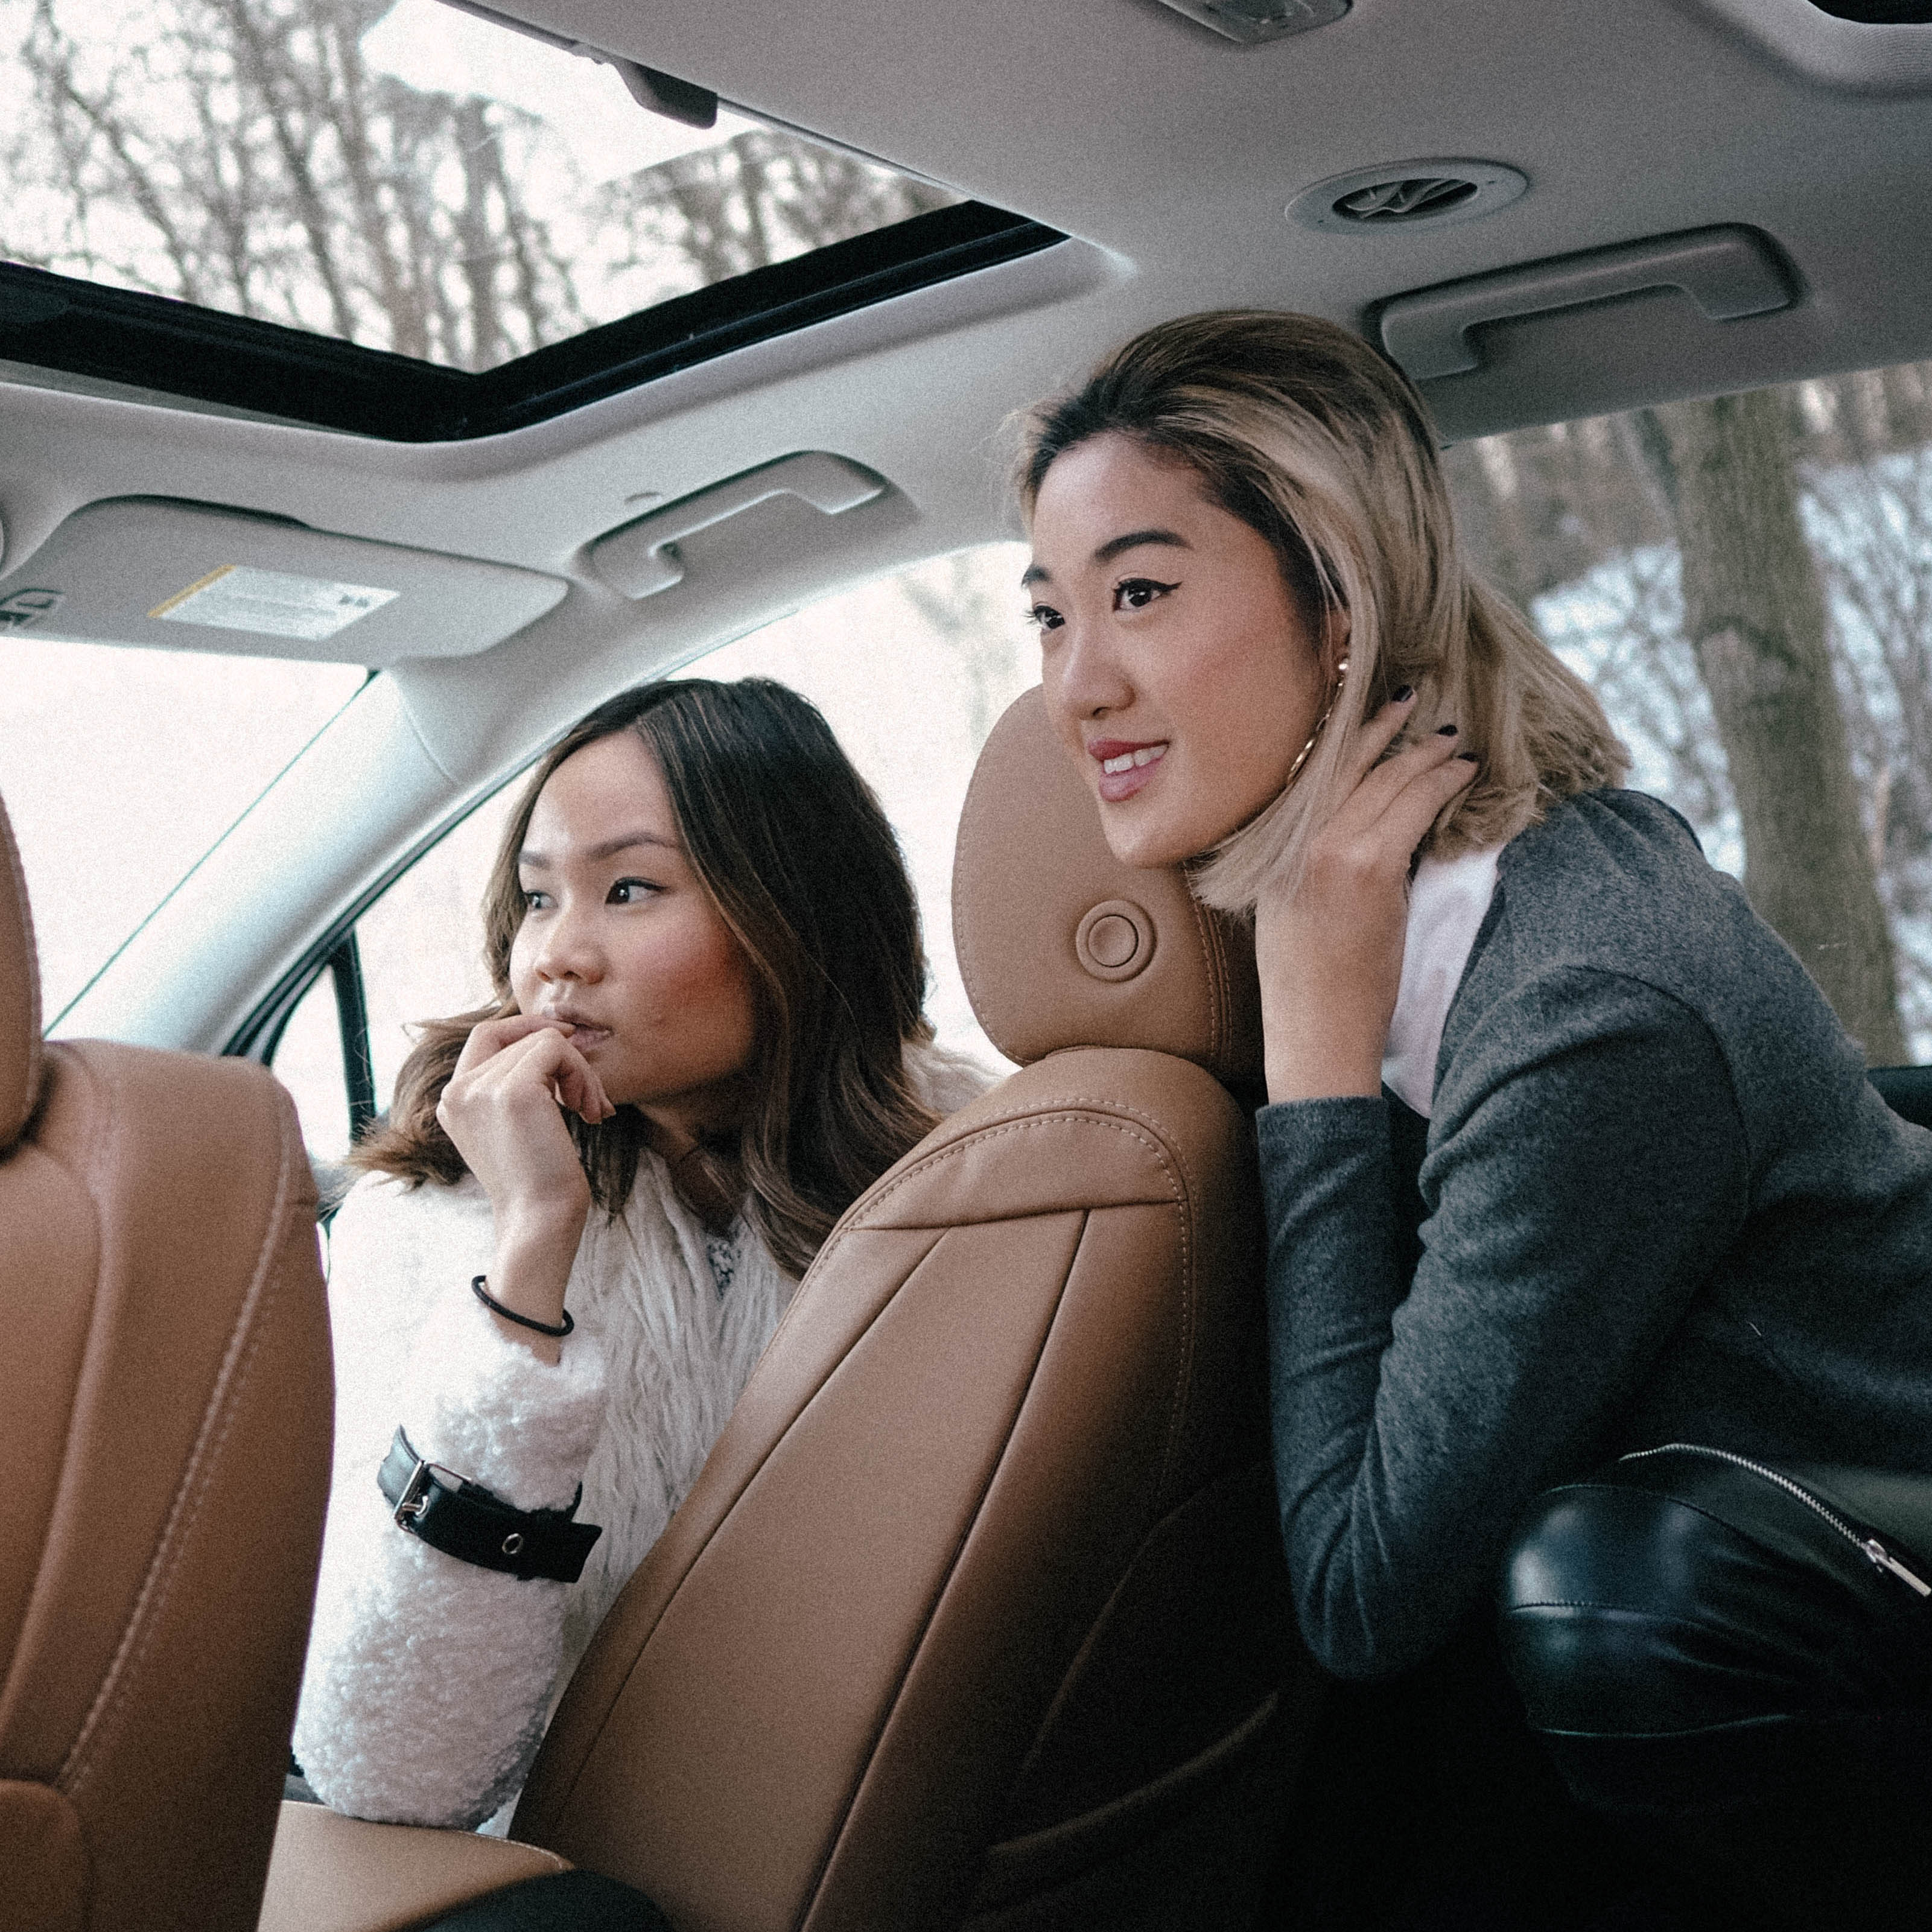 Always keeping a lookout, especially with the gorgeously shaped windows and moonroof in the Buick Enclave.